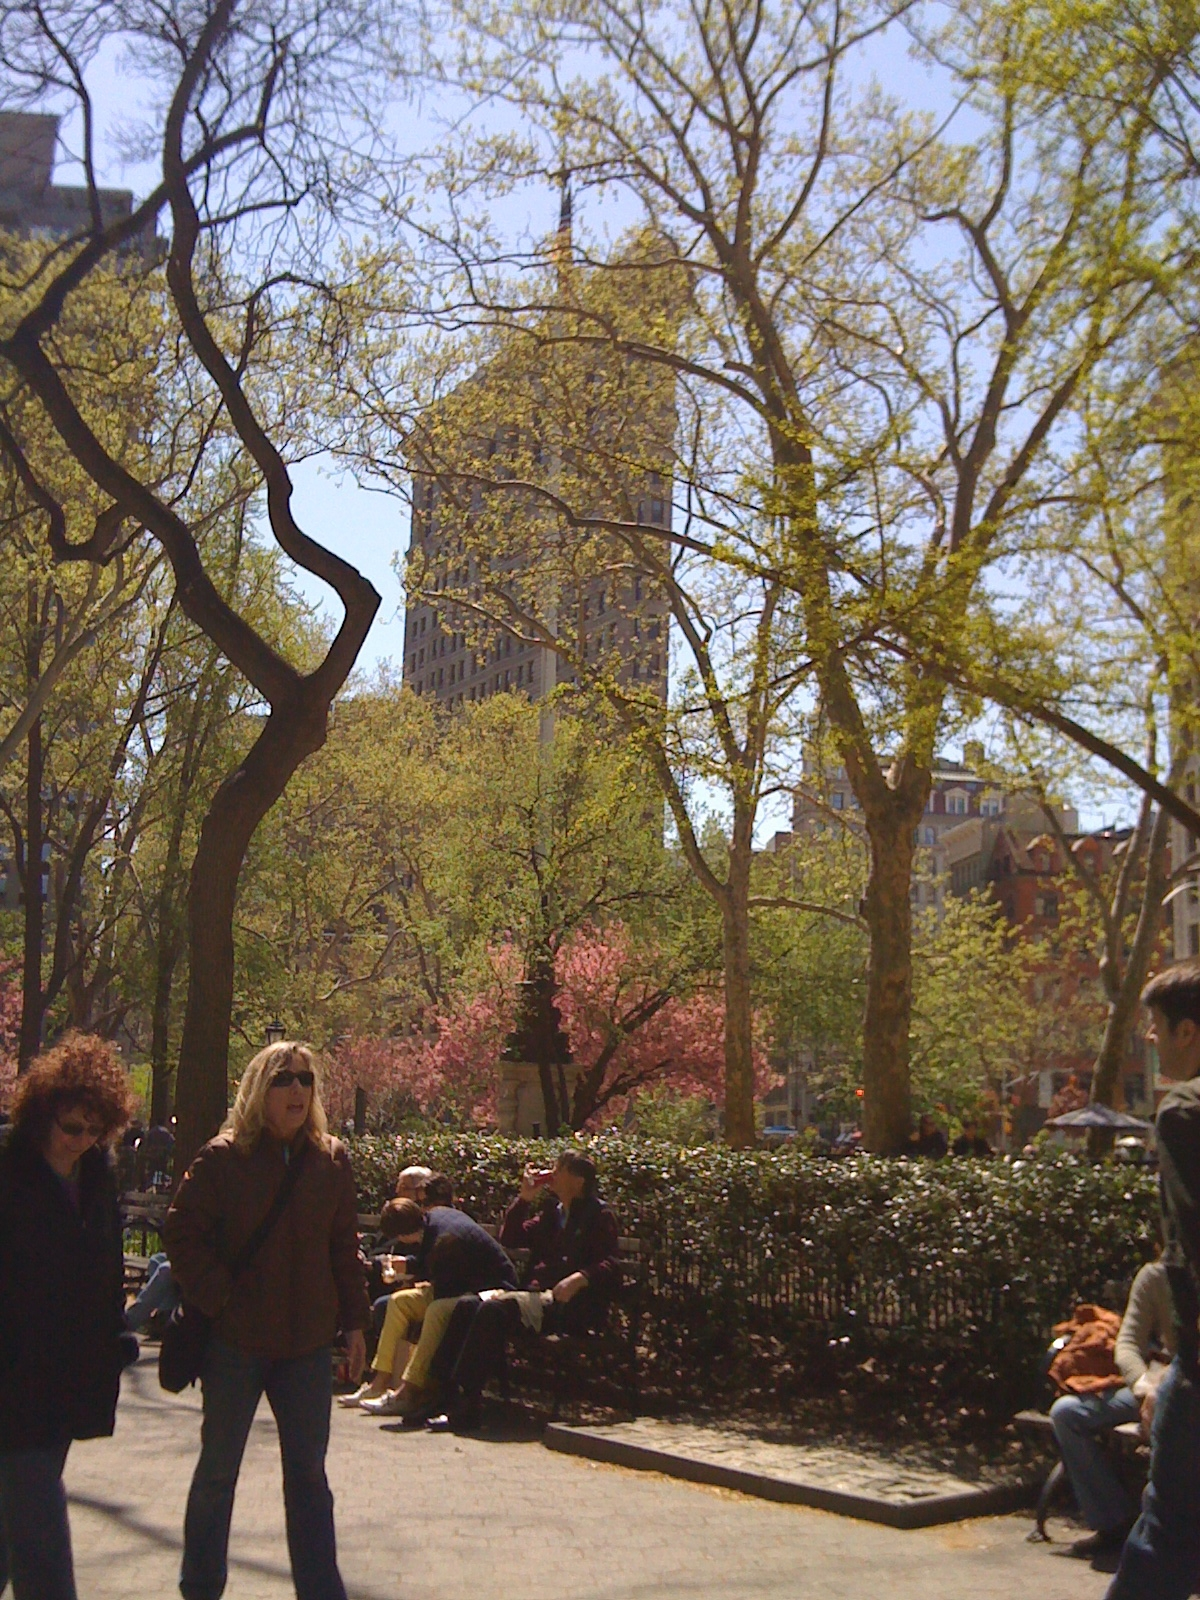 New York parks and things to do